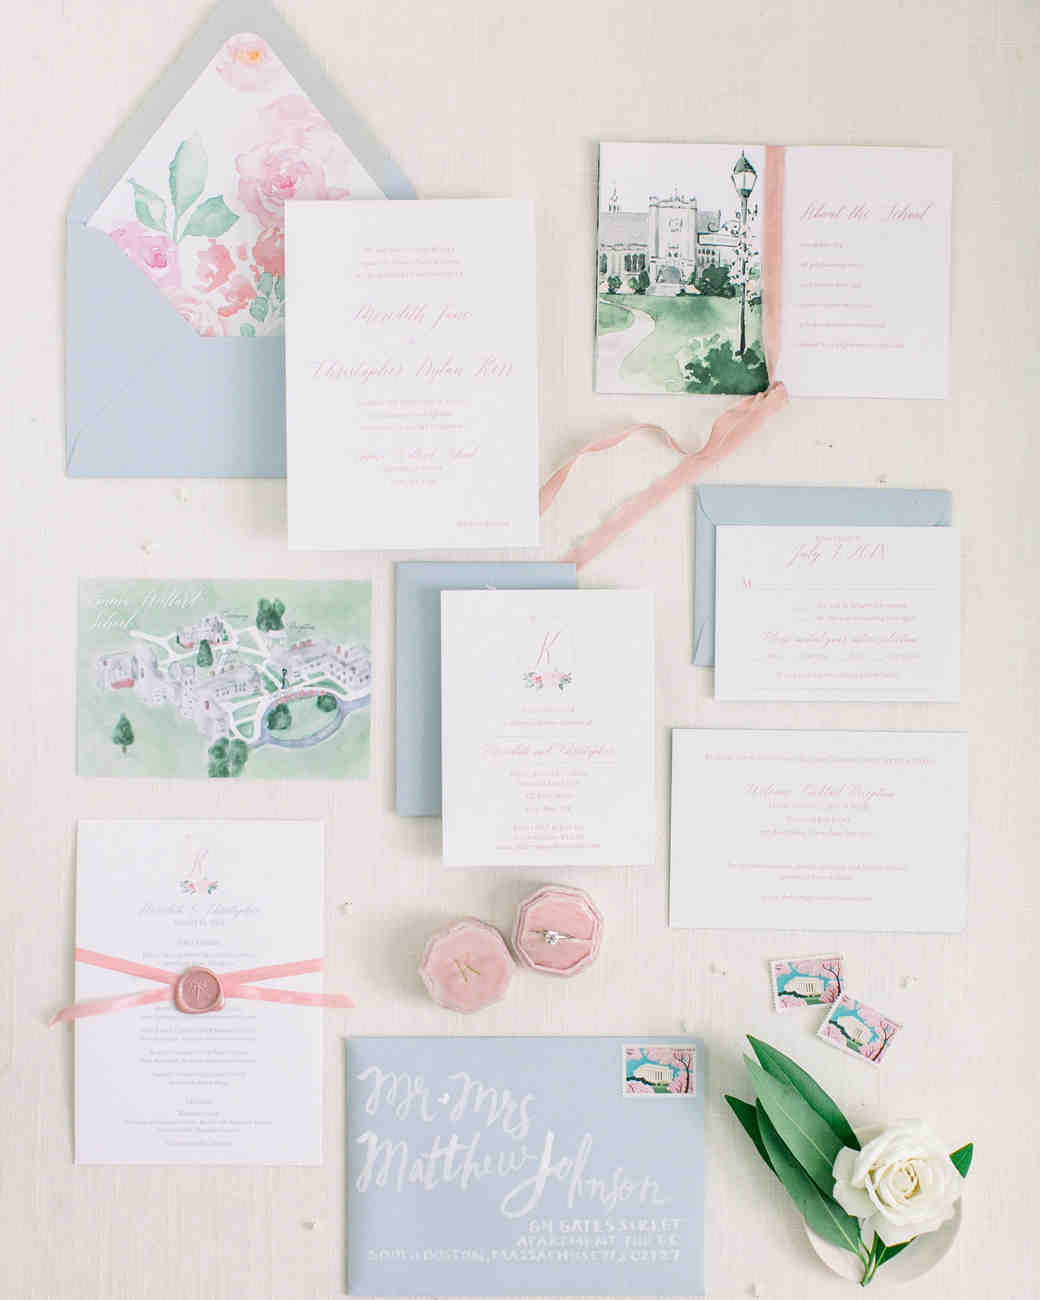 blue and white stationery with floral liner and venue drawings